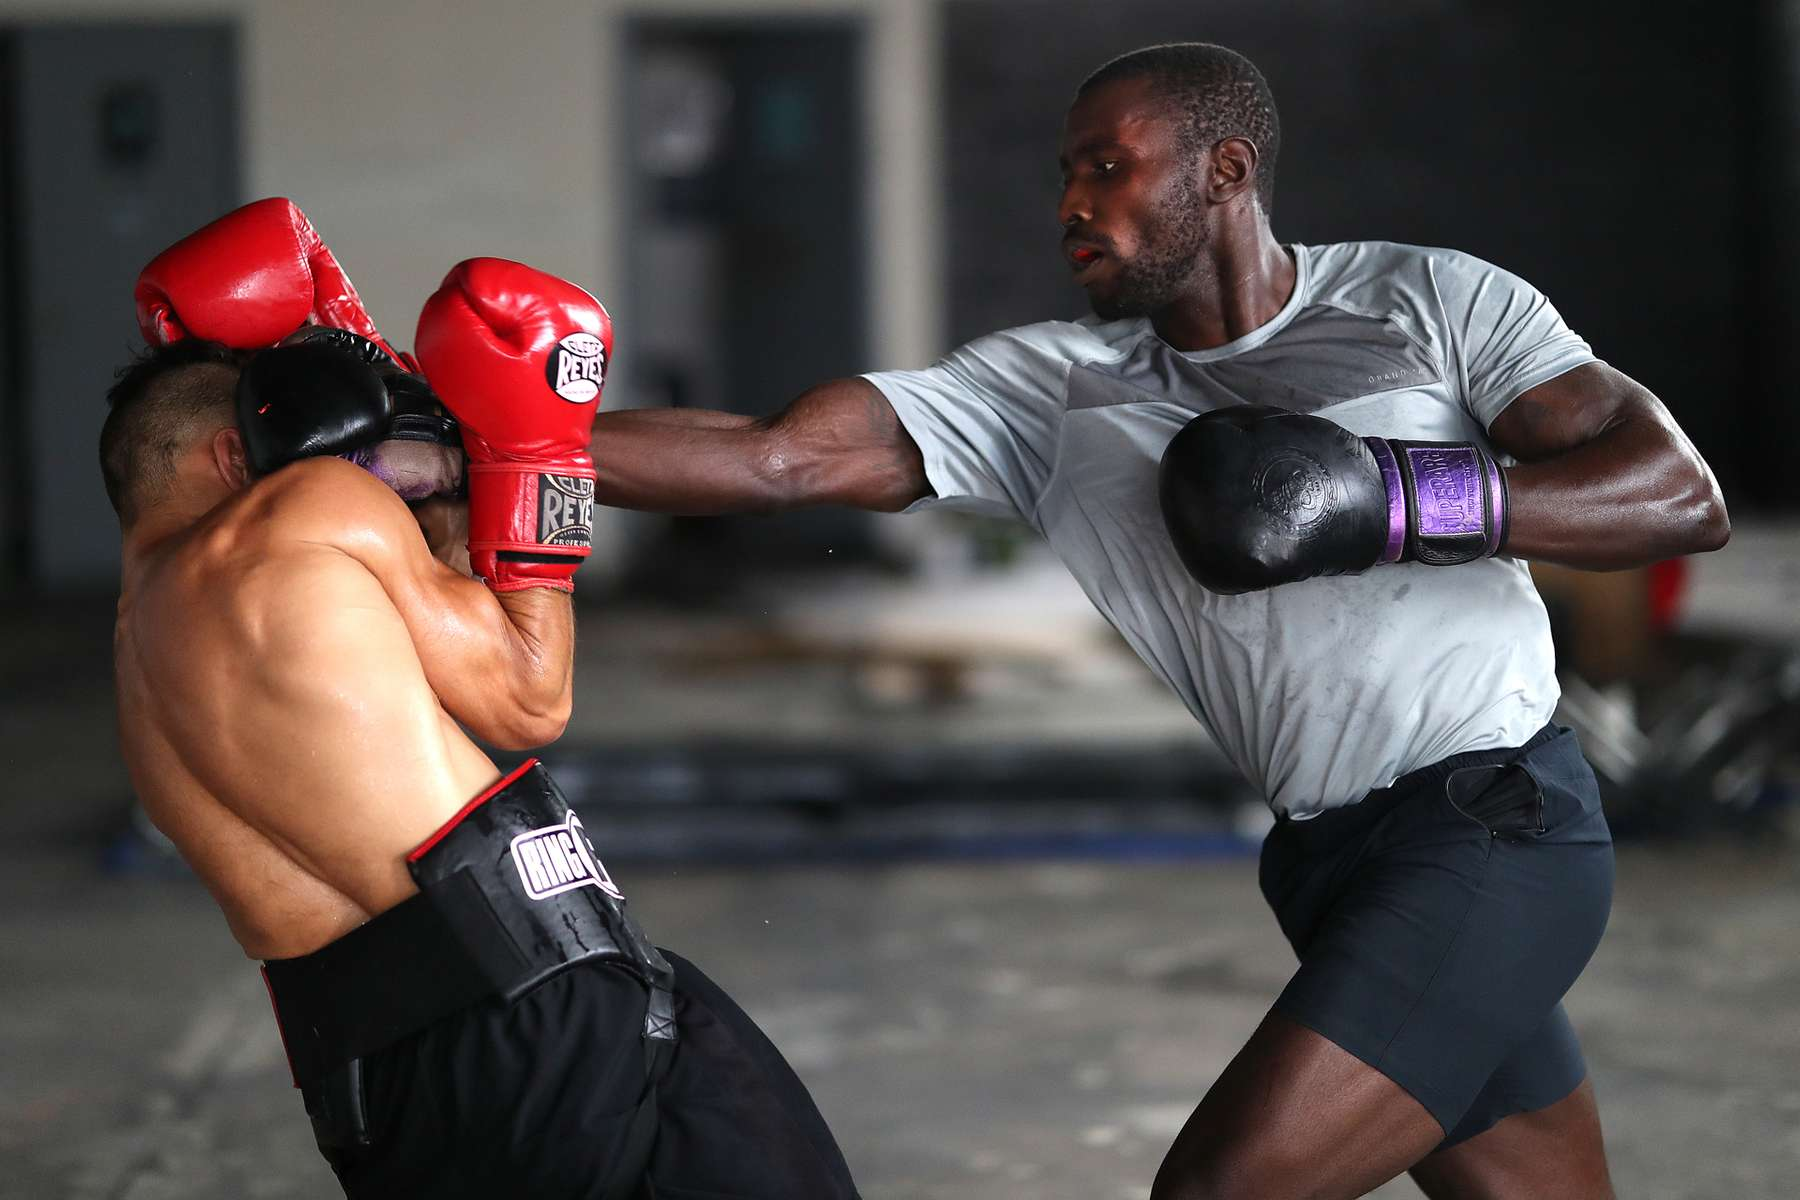 New York Golden Gloves boxer Dennis Guerrero (left) spars with recreational boxer Raheem Yusuff during training session in a warehouse that was once Jetty gym on July 30, 2020 in Oceanside, New York.  Guerrero, who is a co owner of Jetty has tried to hold many types of outdoor and open air workouts while the gym remains closed due to the coronavirus pandemic.  Since all gyms in New York had been closed since March 13, they have been trying to keep up financially to sustain the gym. Guerrero and his partner Michael Levitz have decided to closed their doors for good next week.  They will be moving their workouts online and at select locations.  Governor Andrew Cuomo announced that gyms will not be permitted to reopen during phase 4 until New York's Health Department determines if air filtering systems are circulating the coronavirus. More than 4,540,000 people in the United States alone have been infected with the coronavirus and at least 154,000 have died.